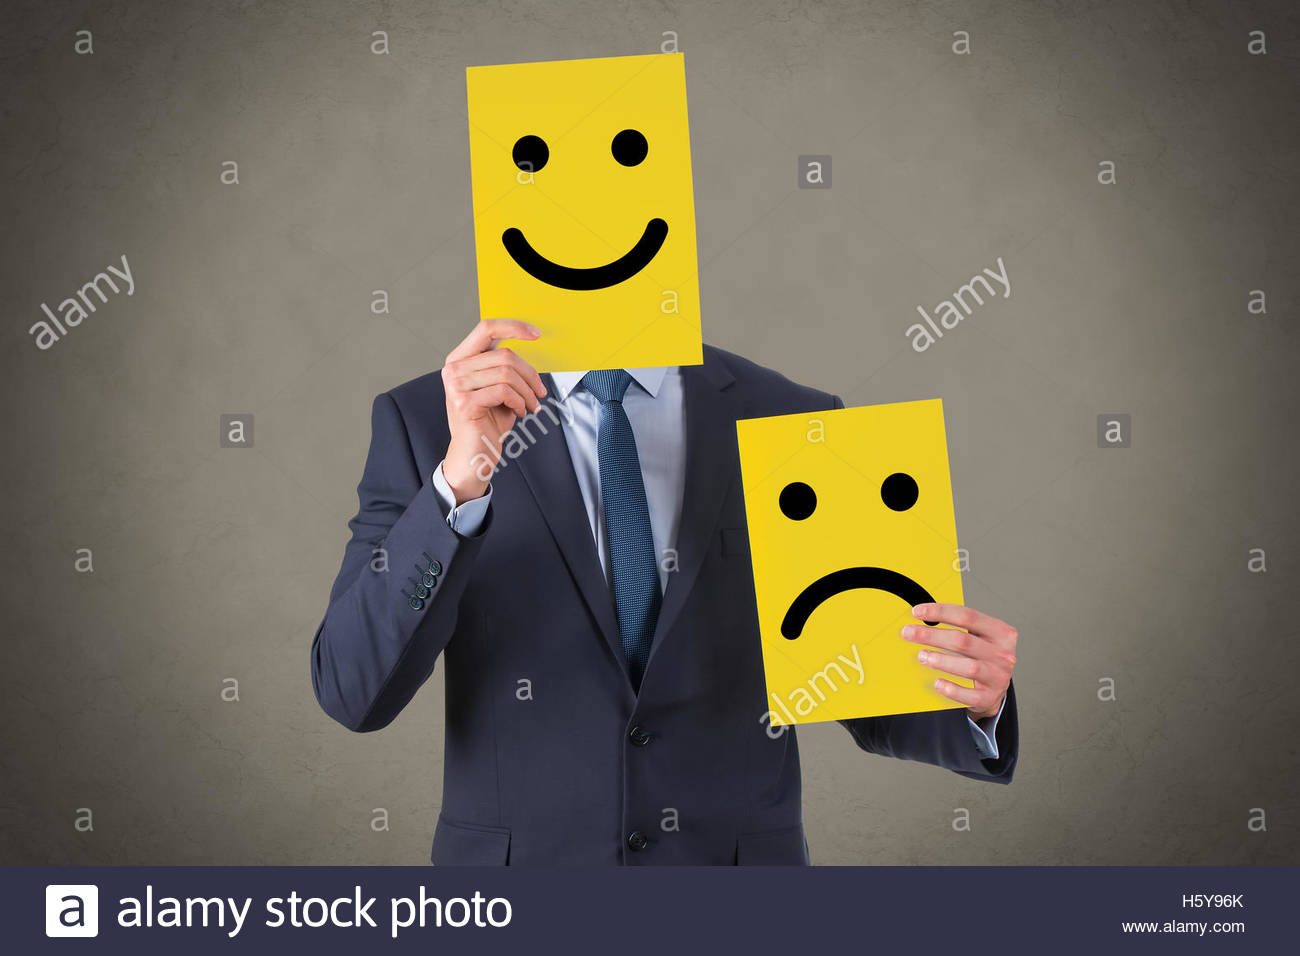 Smile Face Drawing on Yellow Cardboard - Stock Image